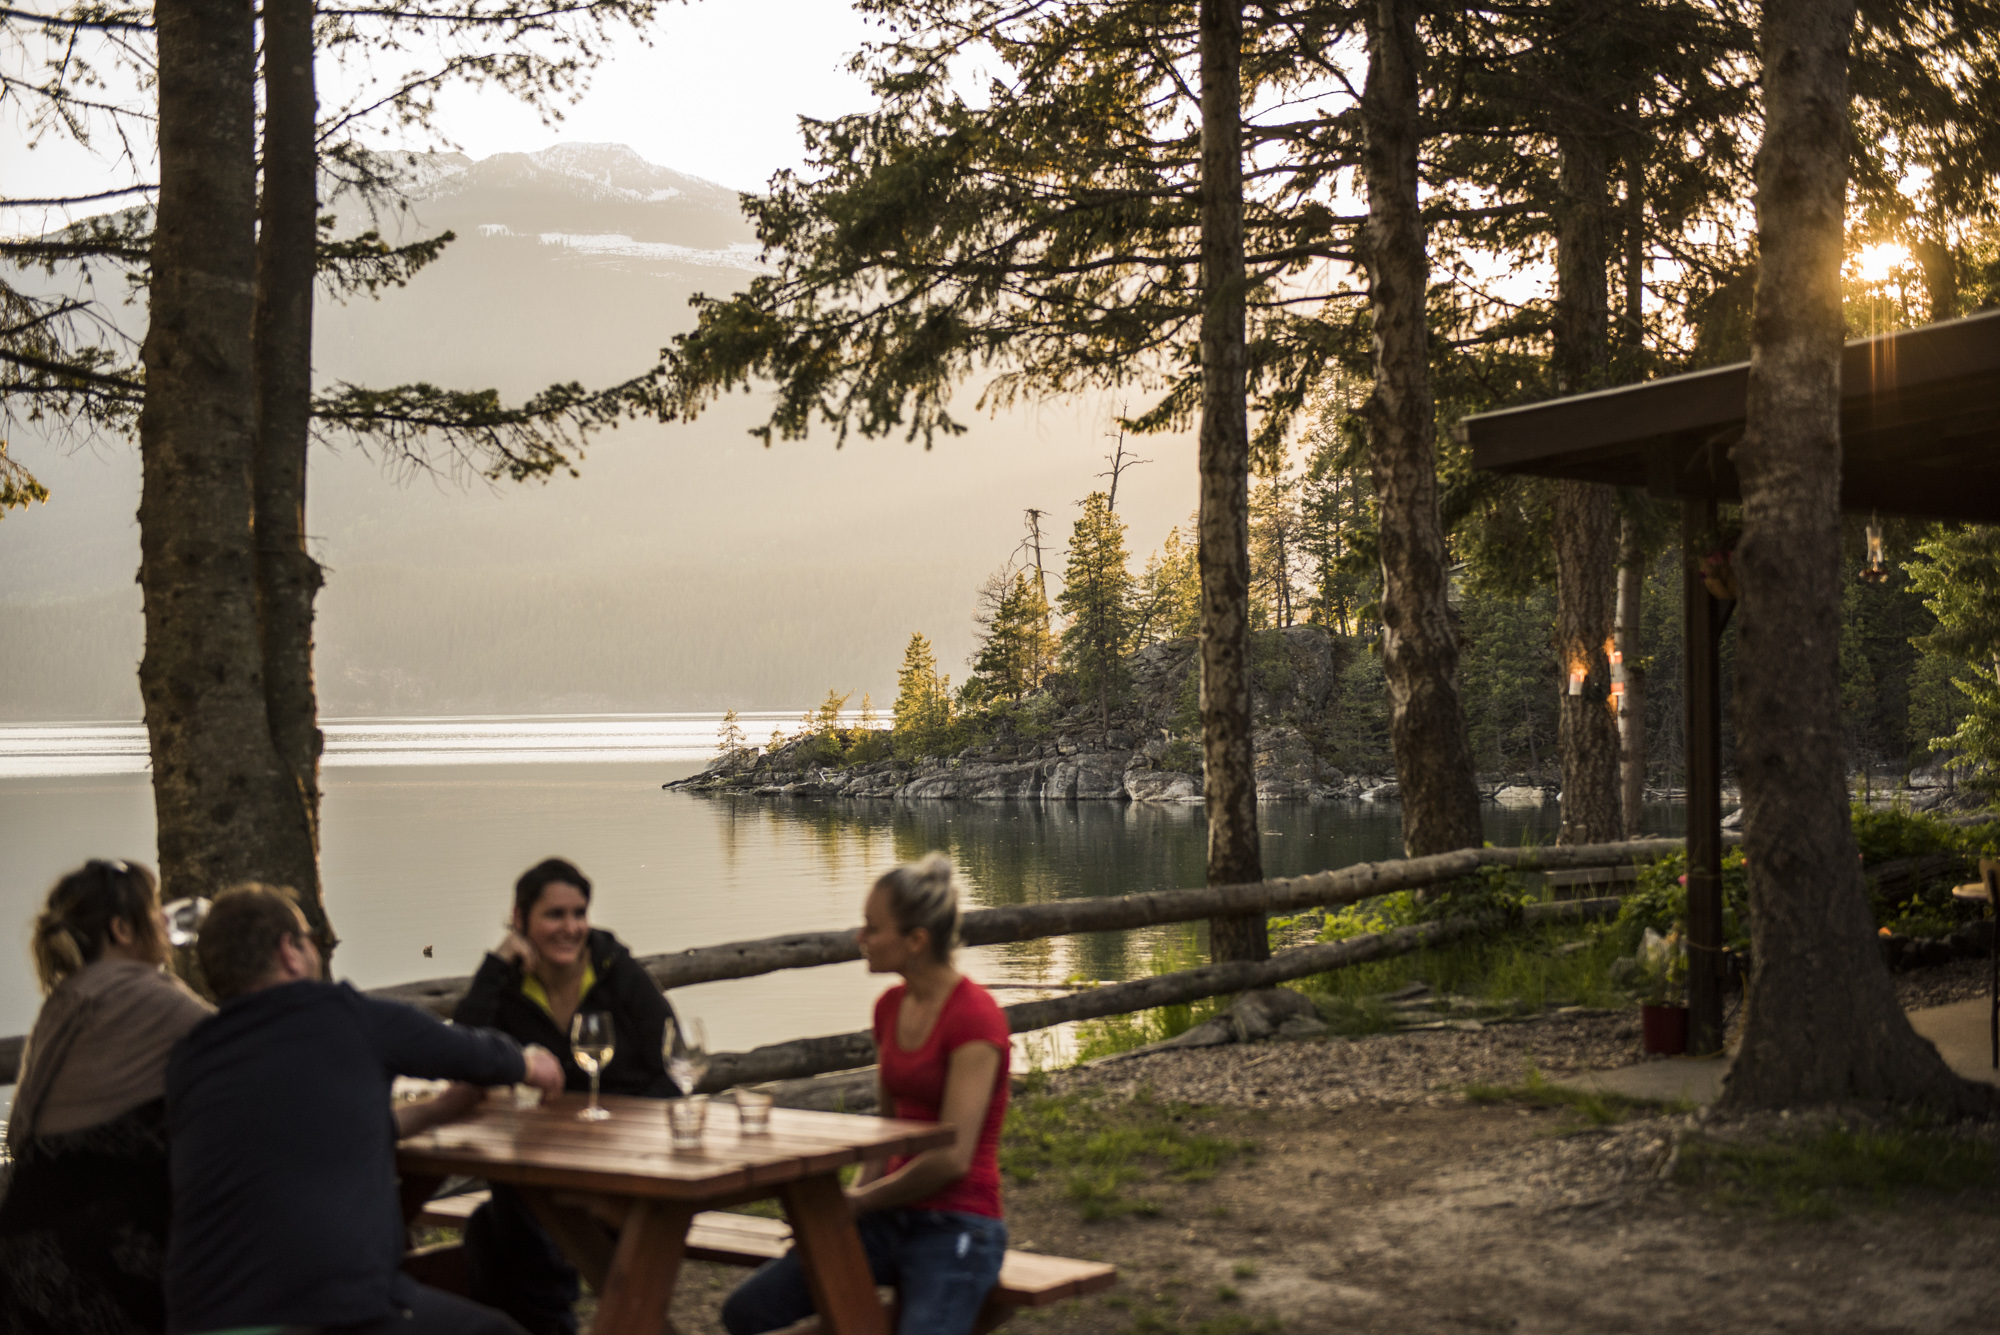 cabin-friends at picnic table.jpg